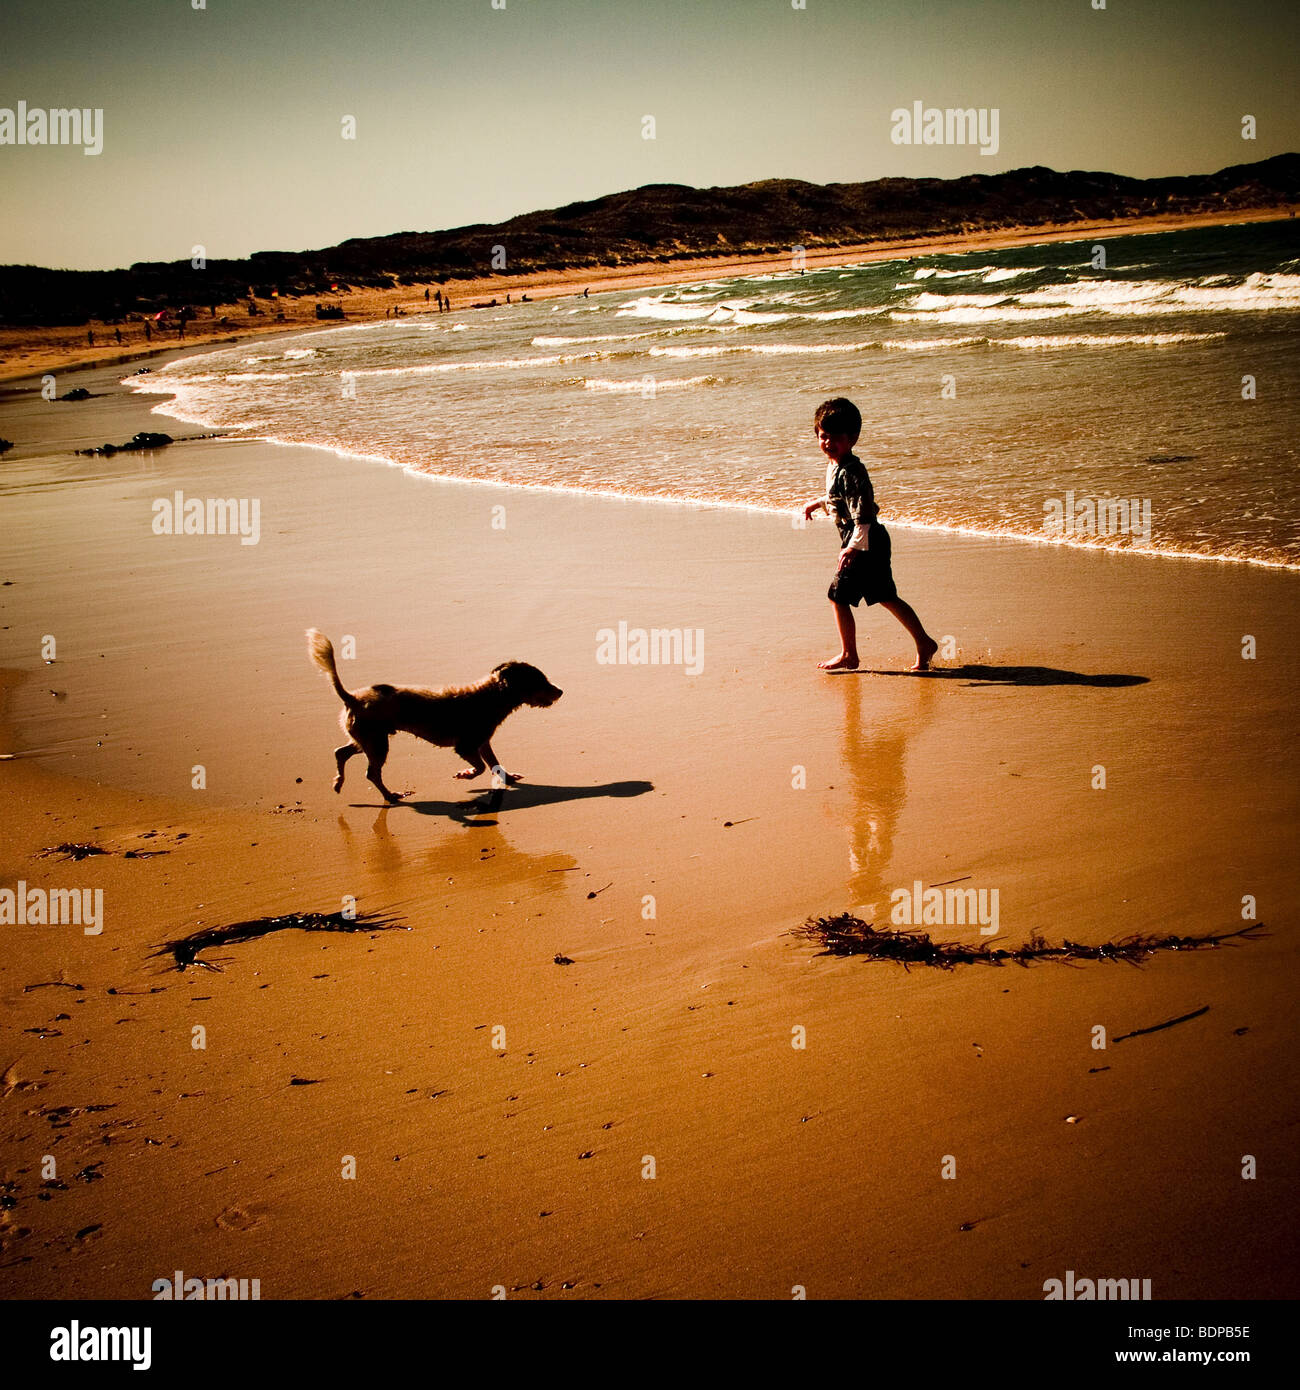 A boy and a dog on a beach having fun - Stock Image